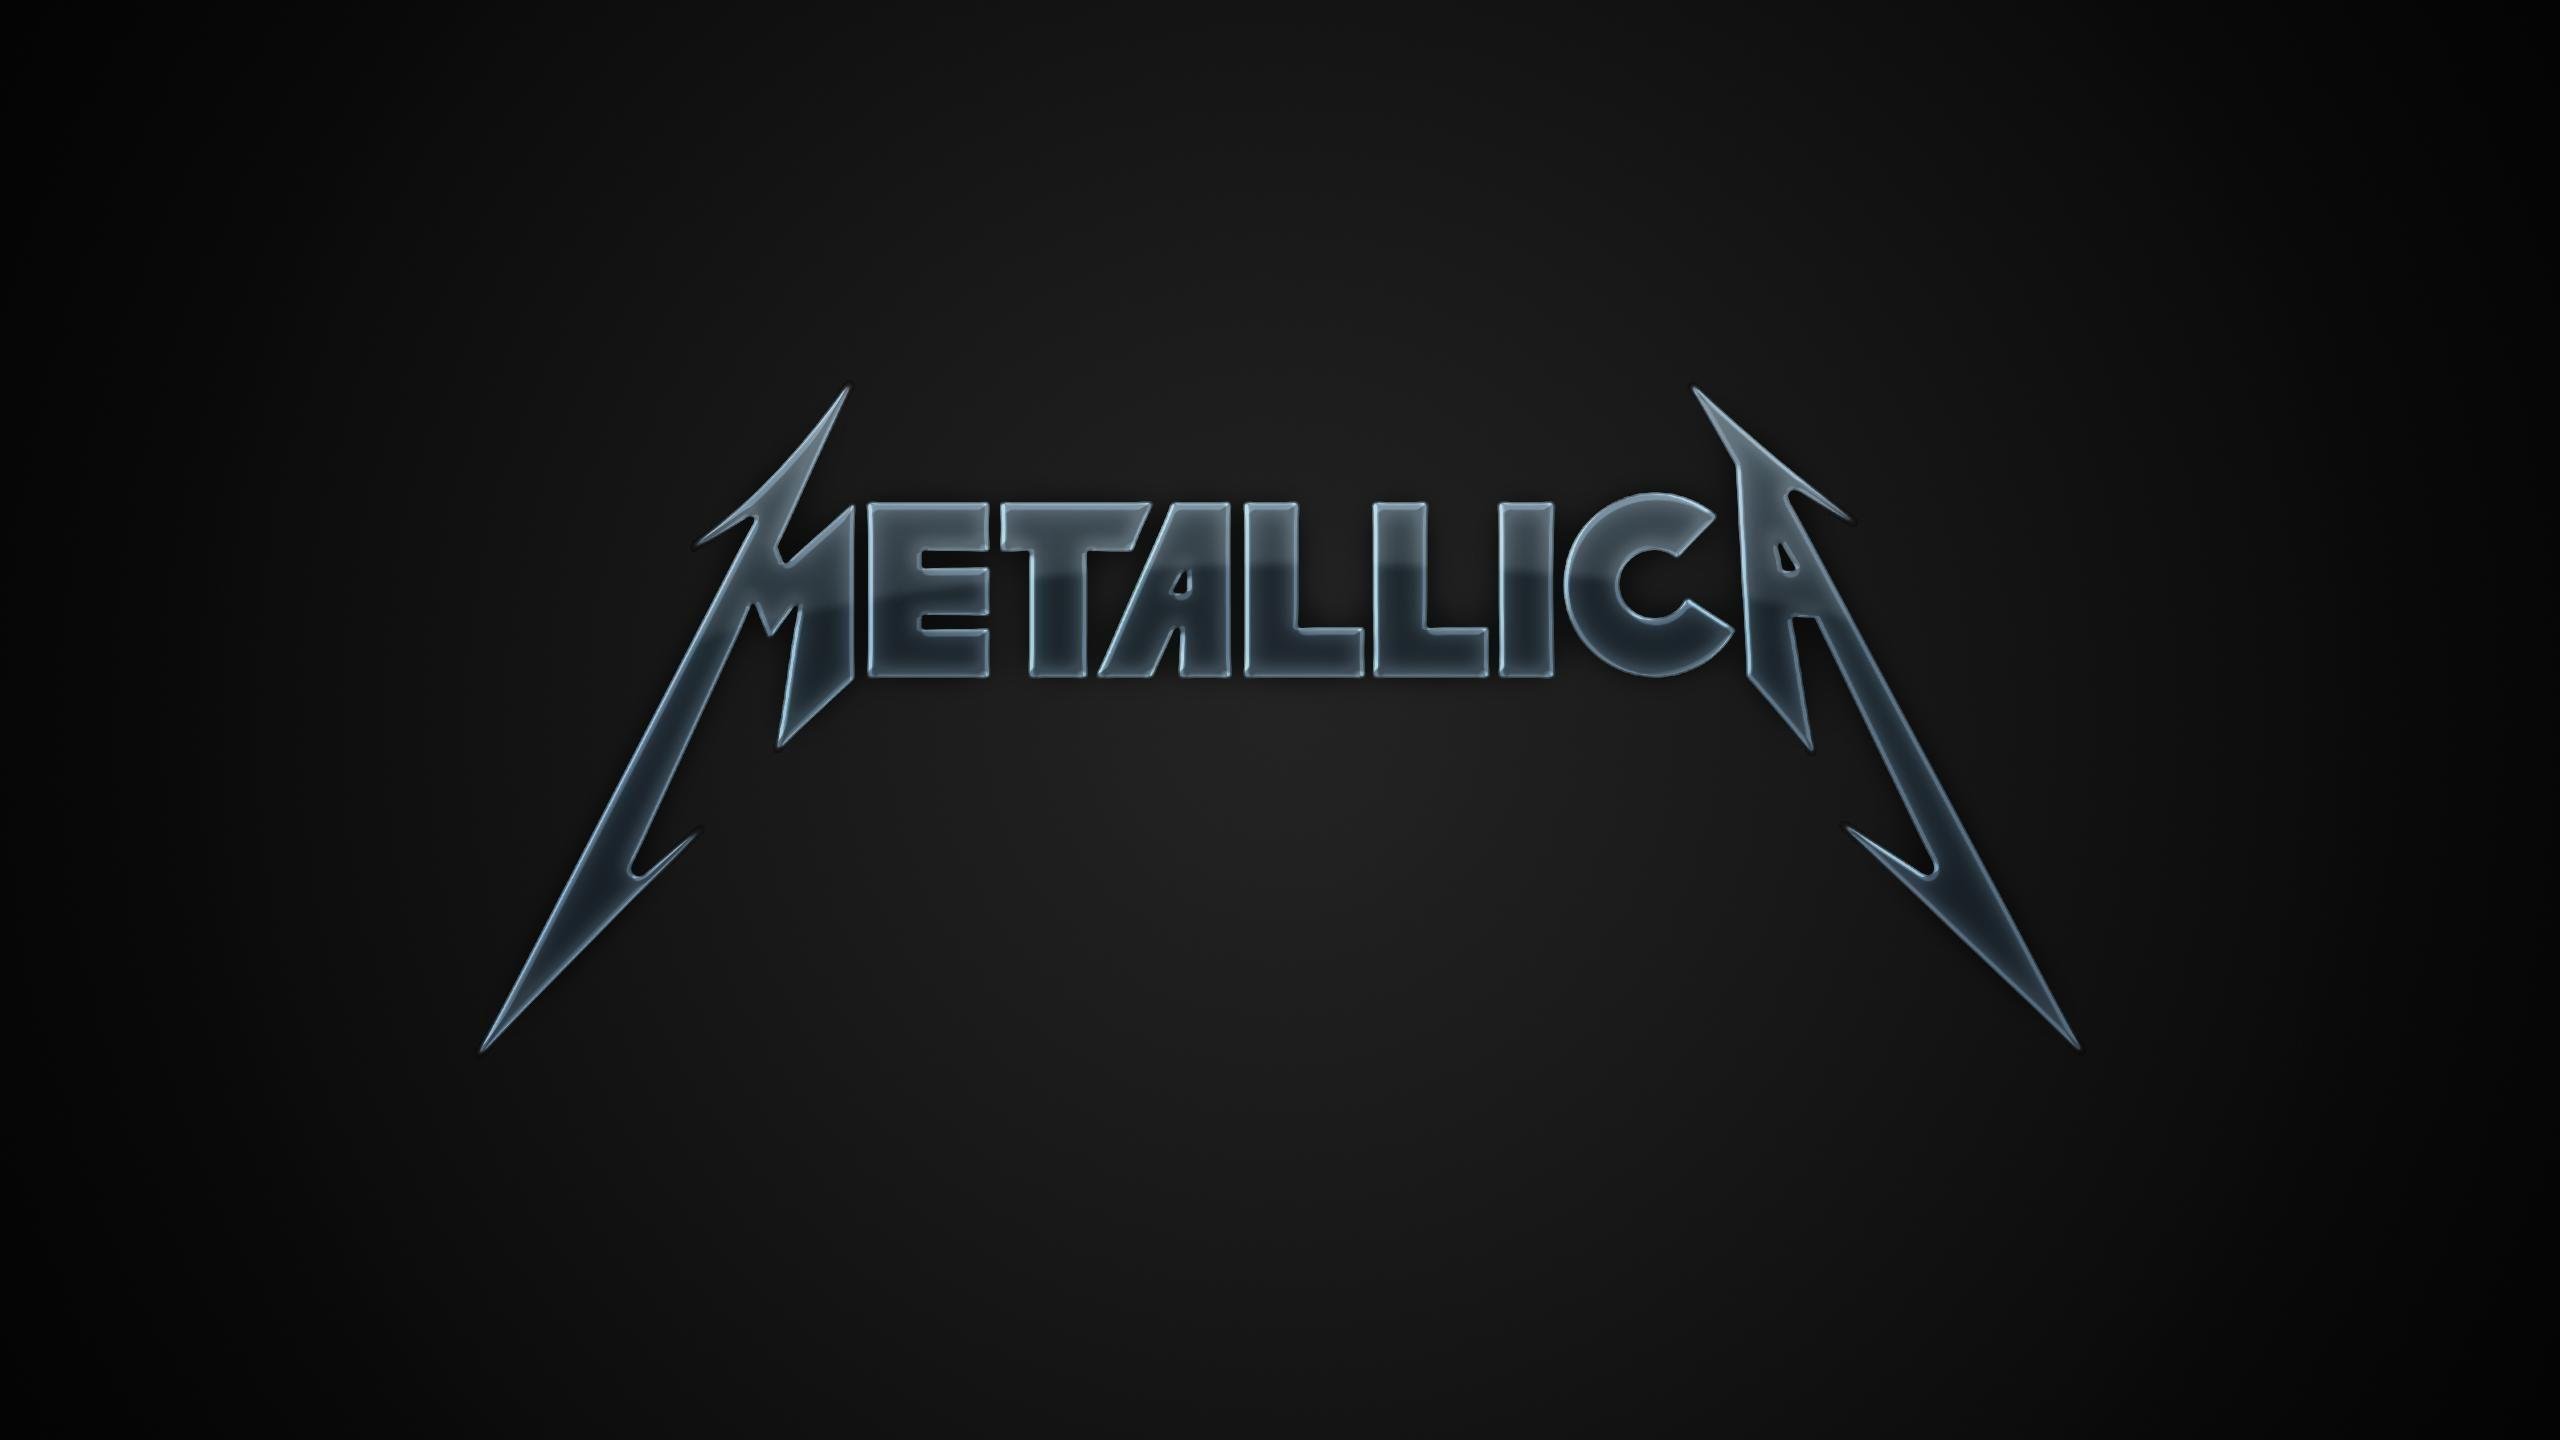 metallica logo wallpapers wallpaper cave metallica logo font metallic logos megapack